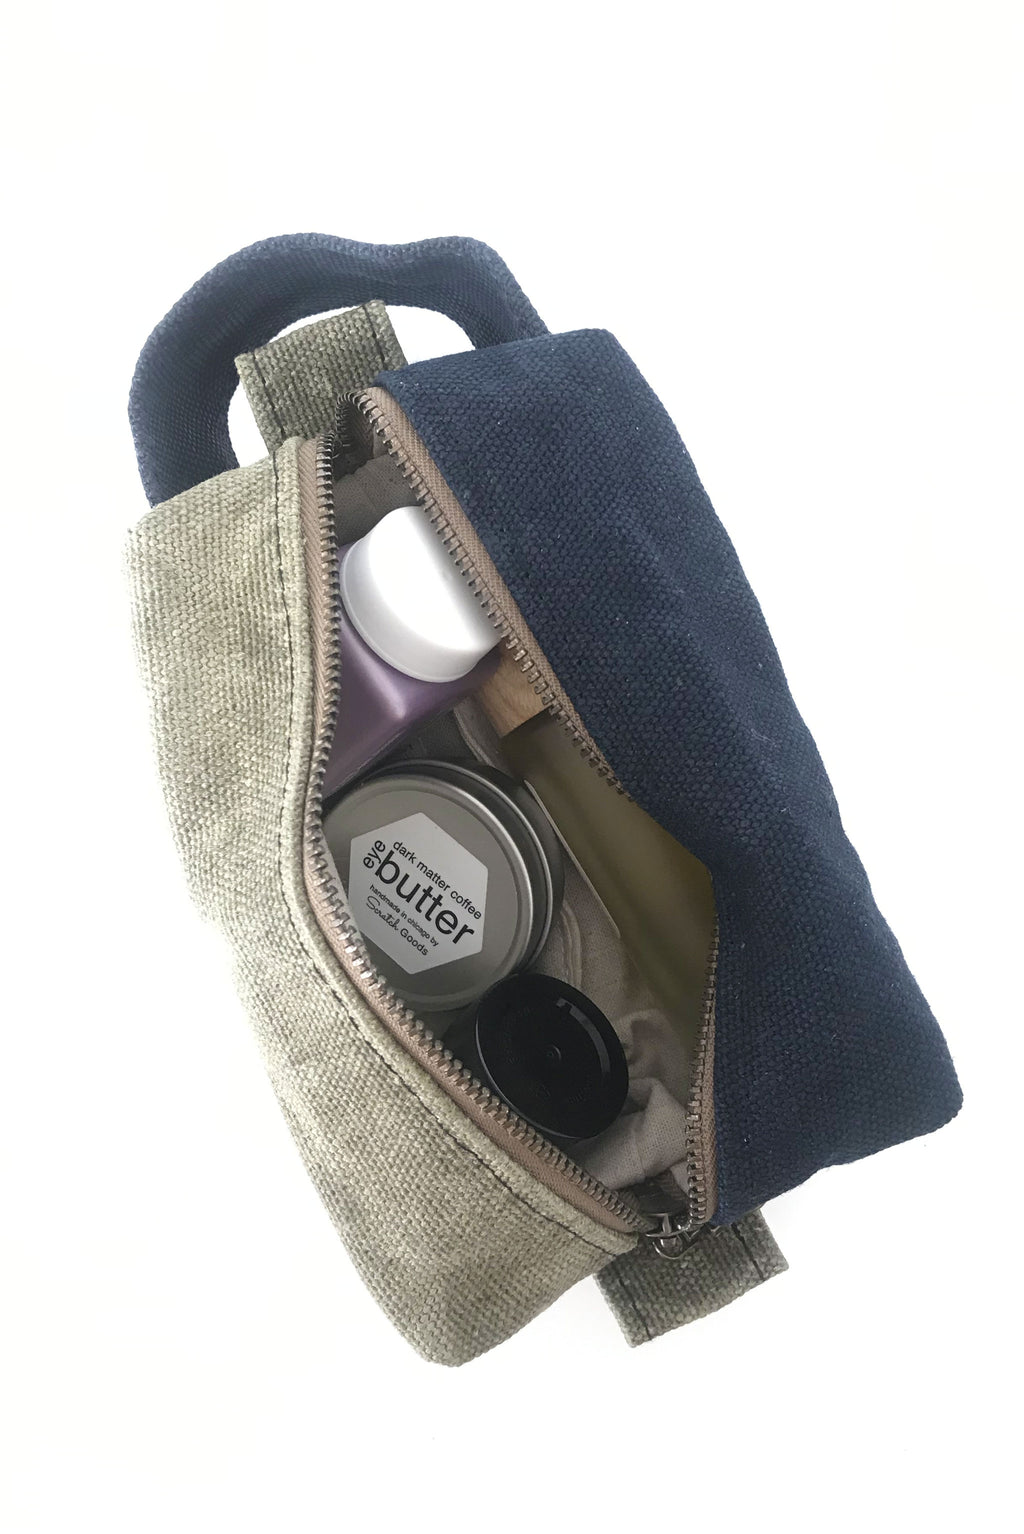 small waxed canvas toiletry bag with handle and brass zipper. The bag is open and contains small toiletries inside. The bag is half sage green and half dark navy blue.